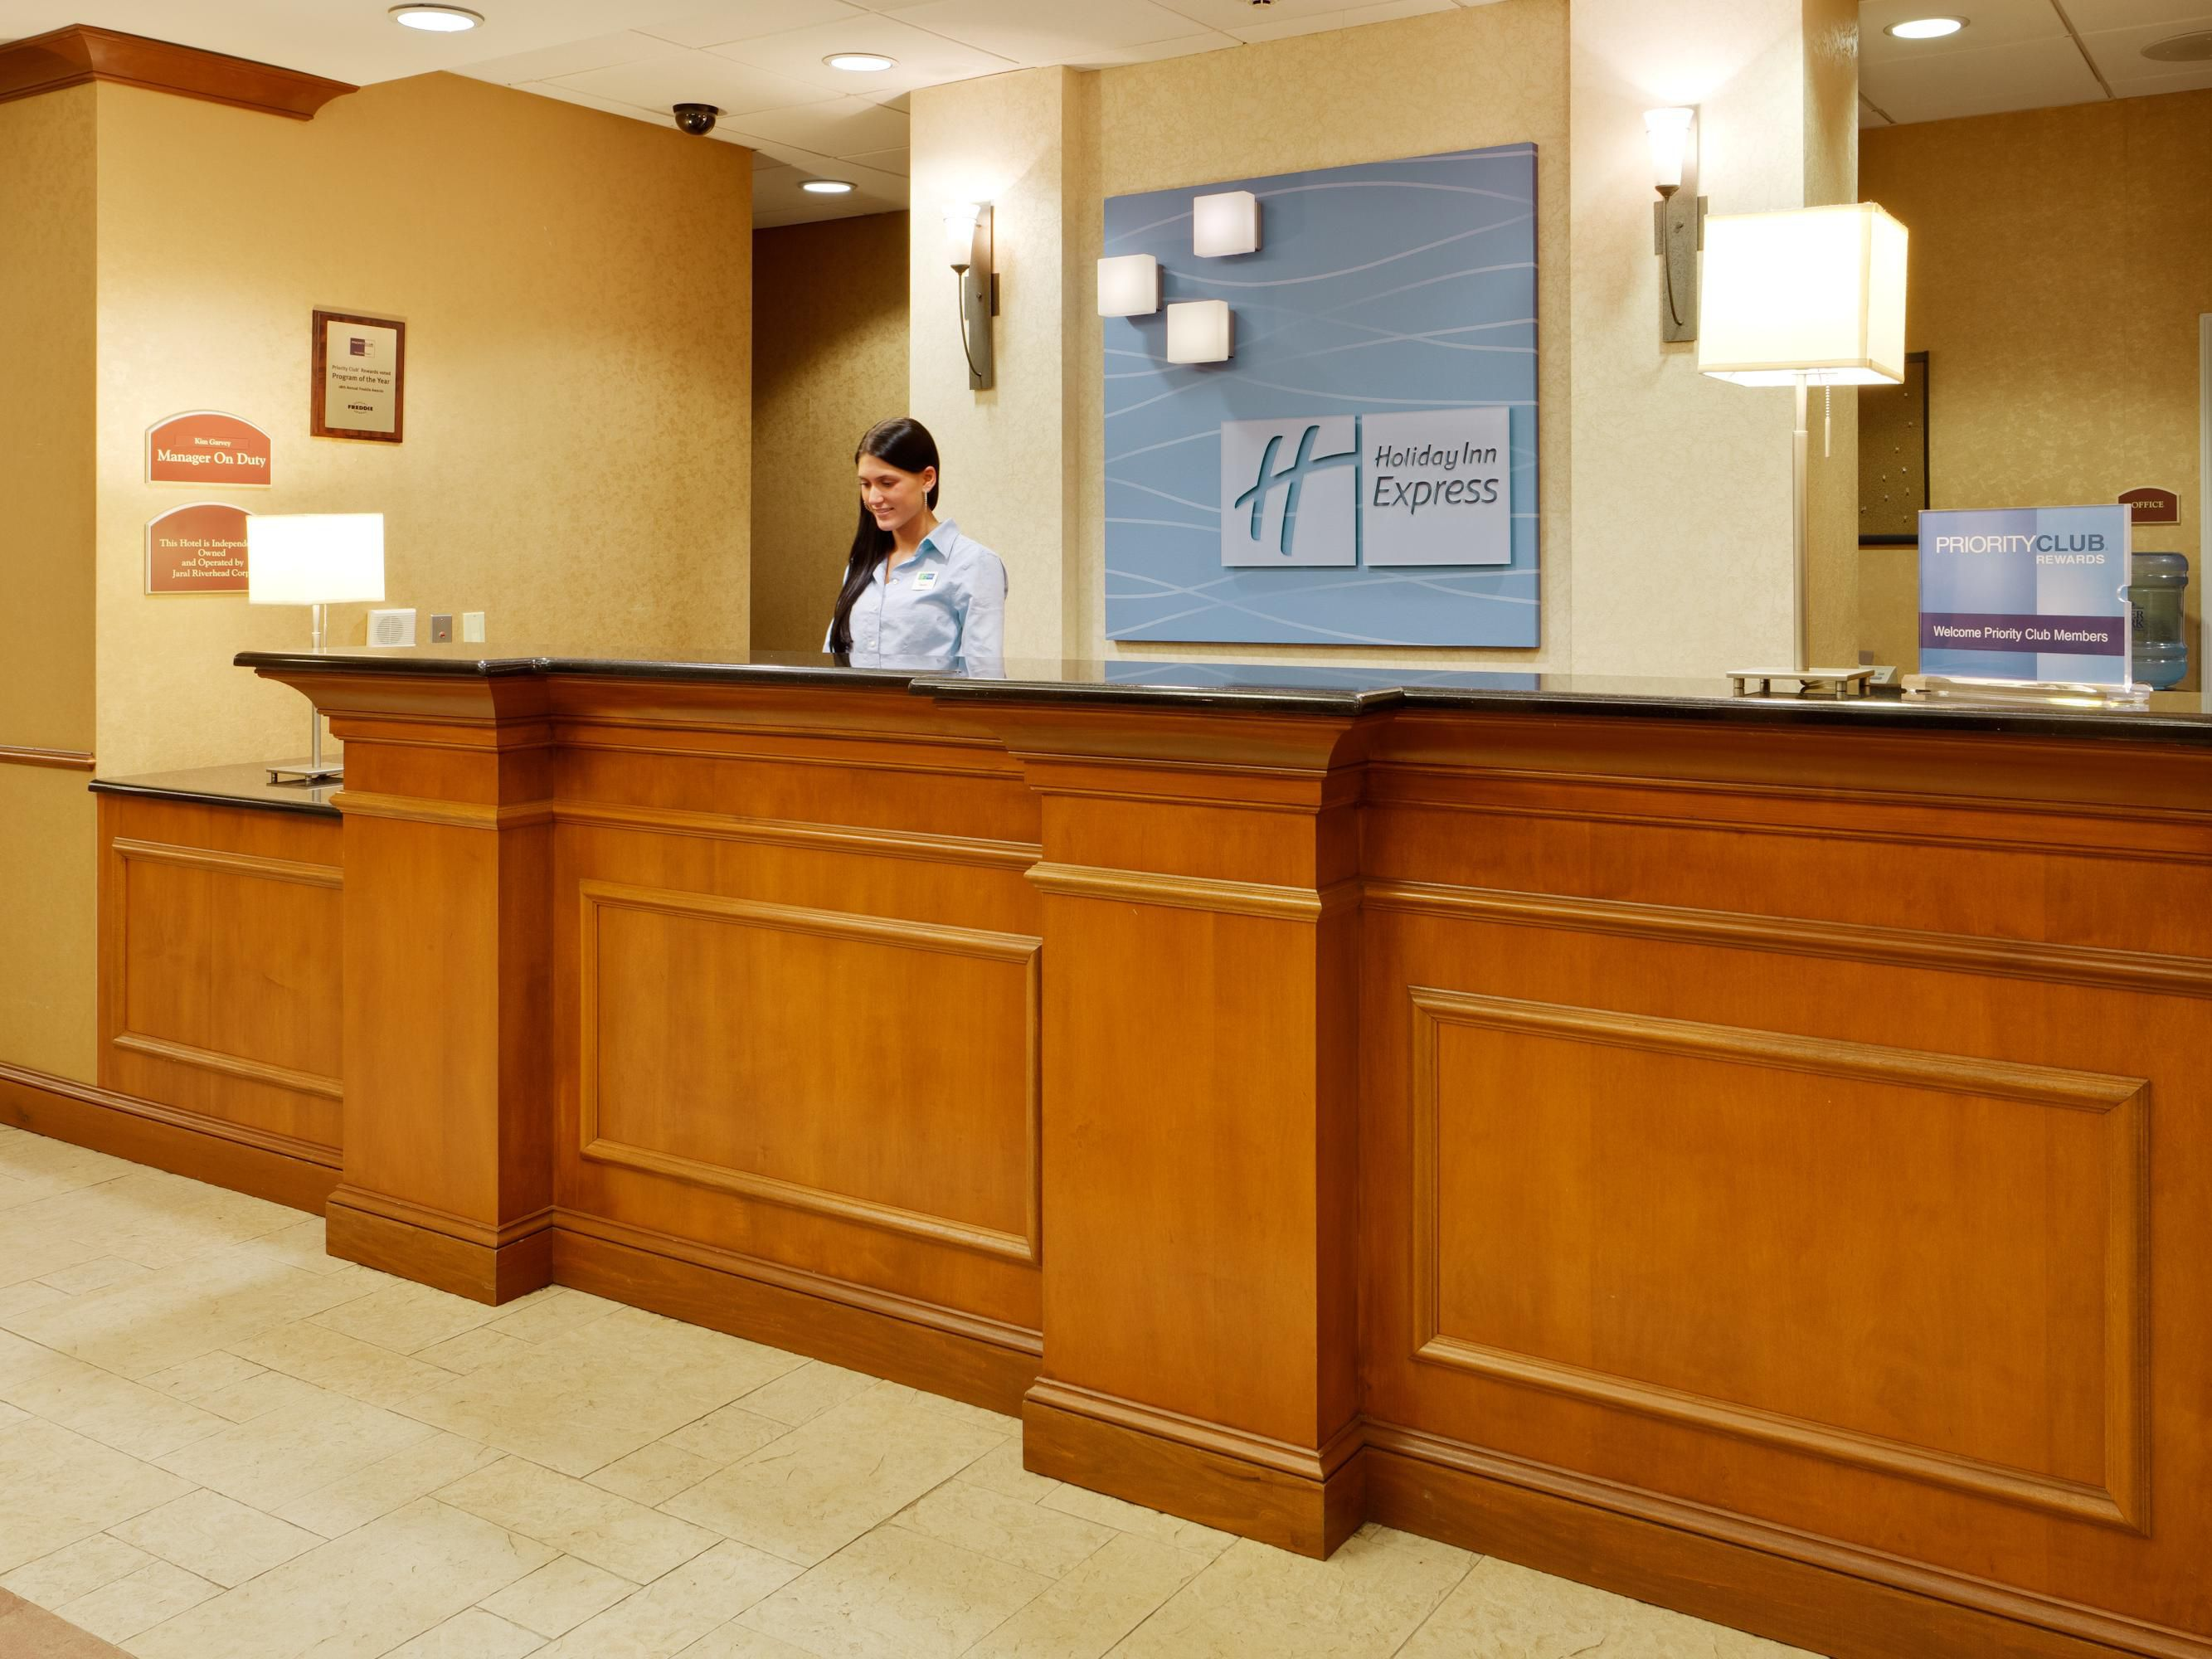 Holiday Inn Express East End. Riverhead, NY - Front Desk